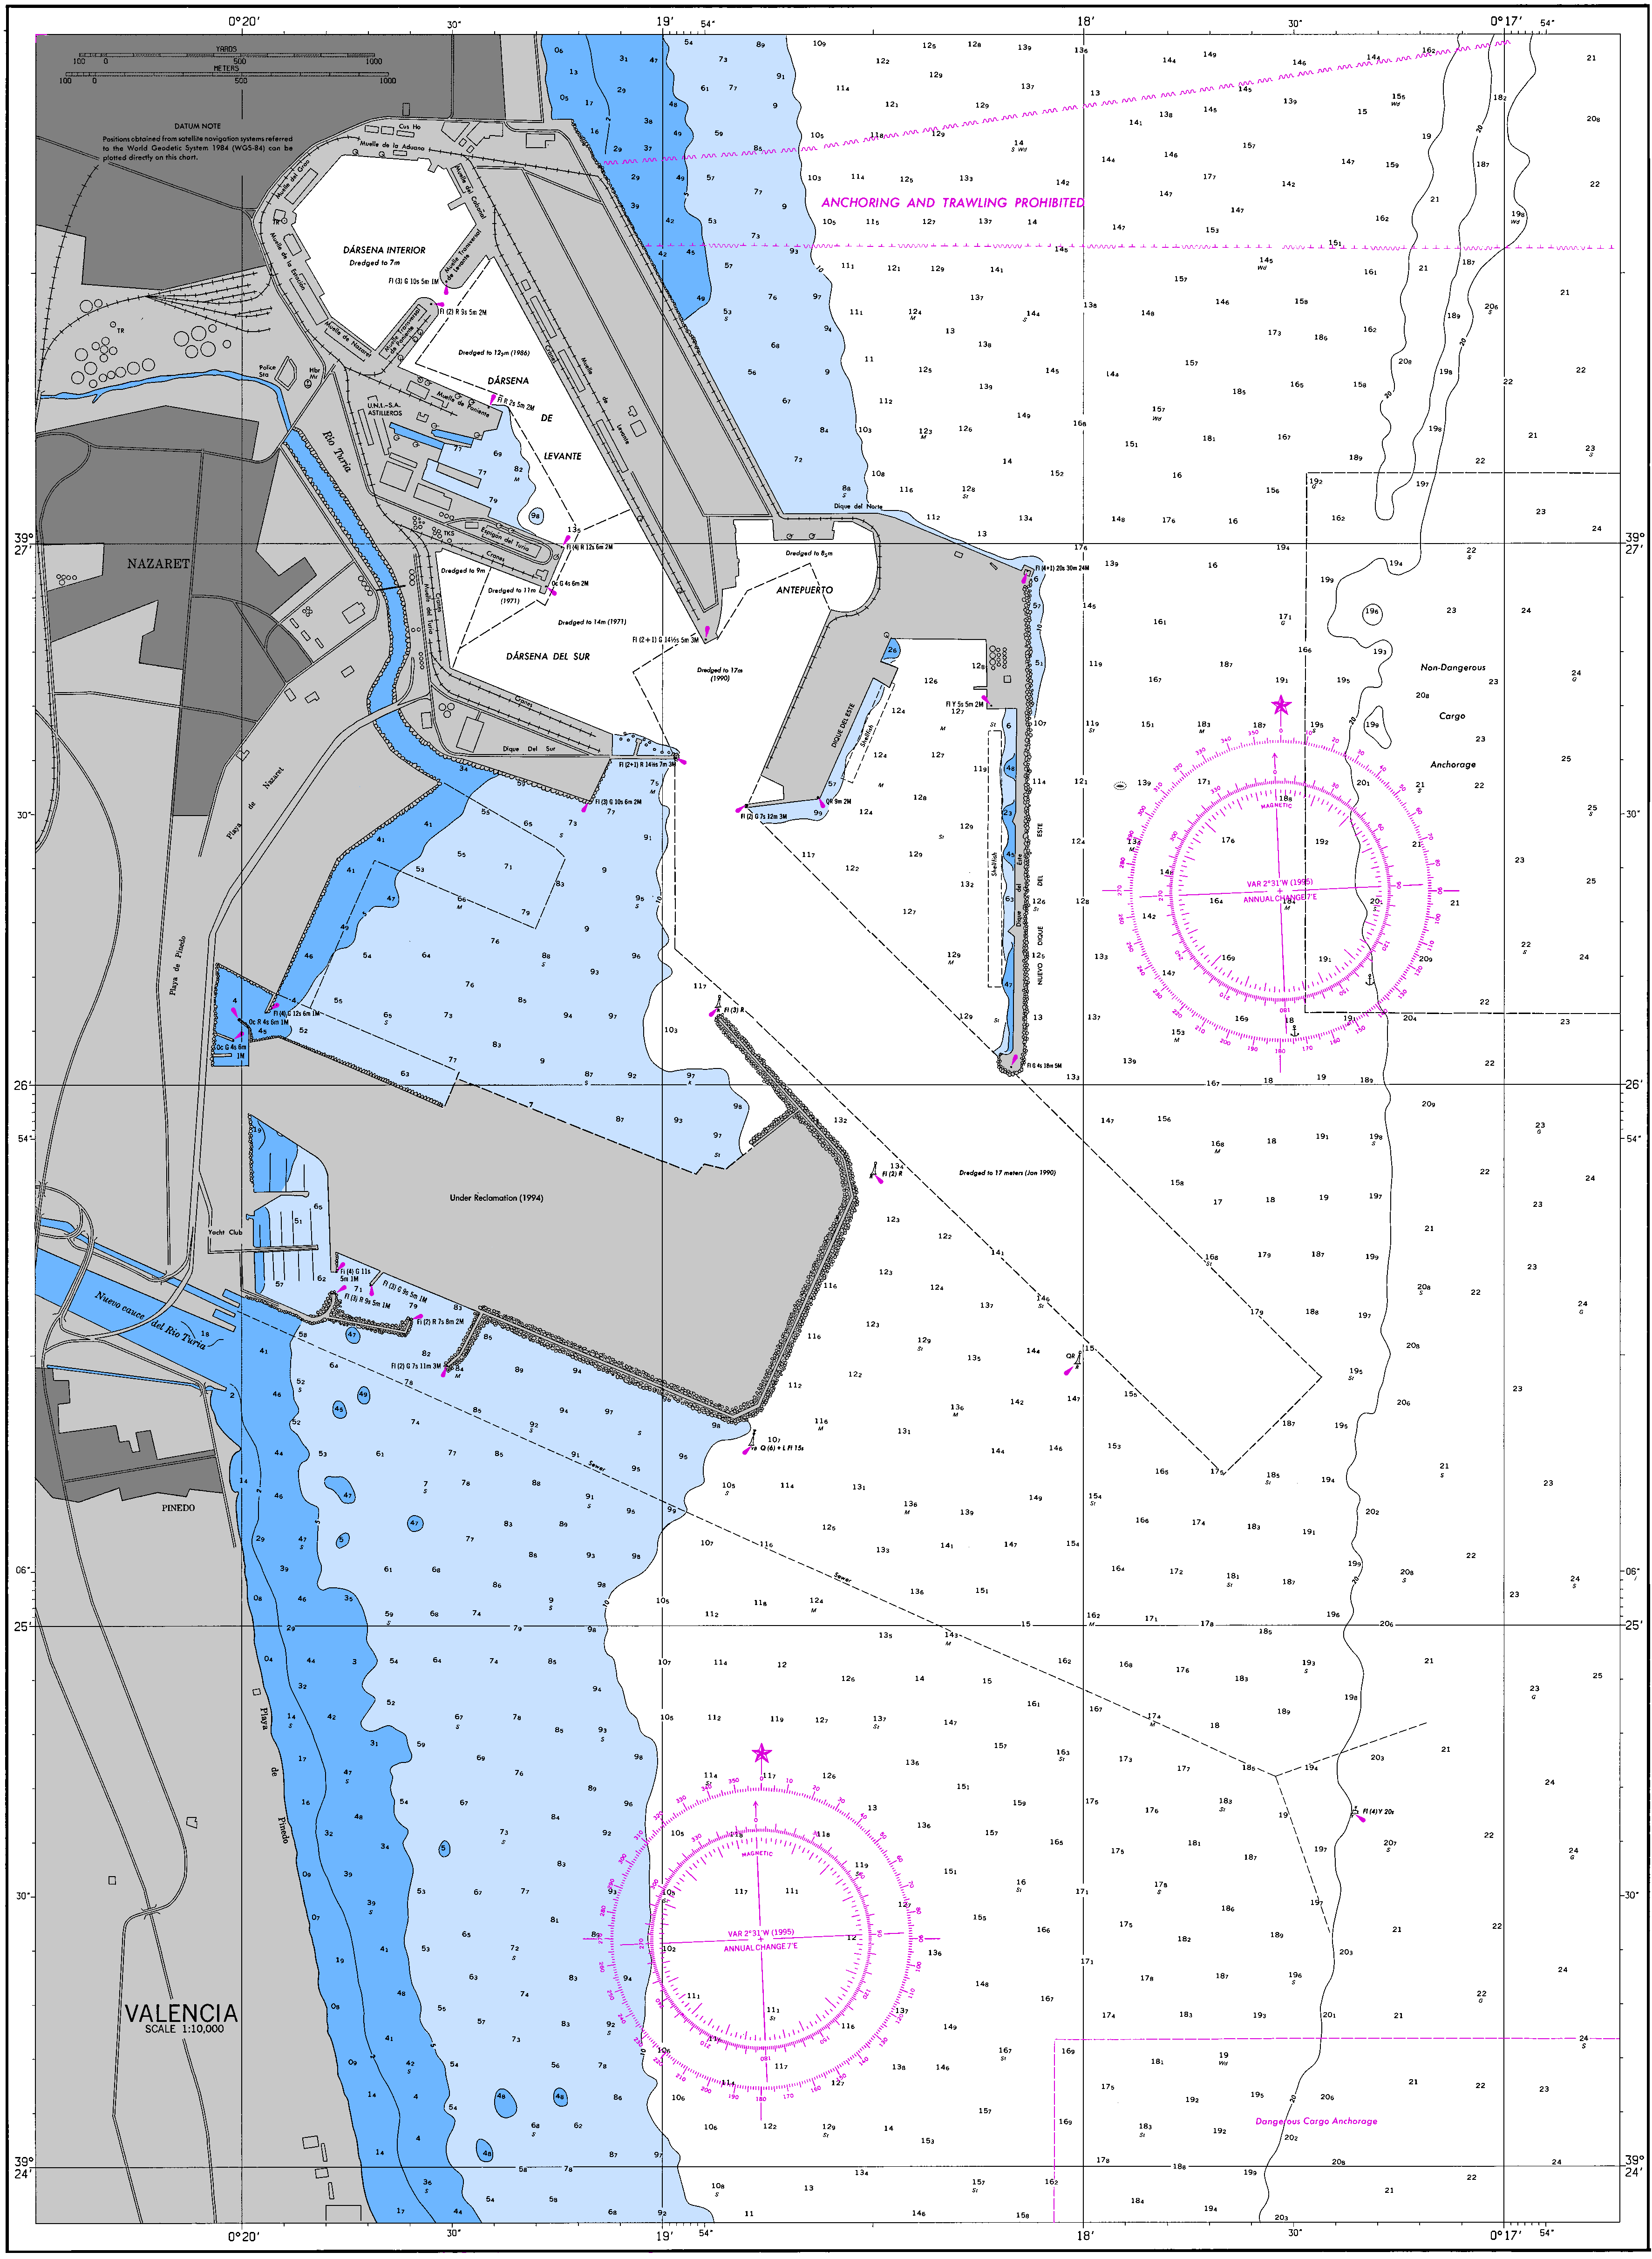 Port of Valencia nautical chart